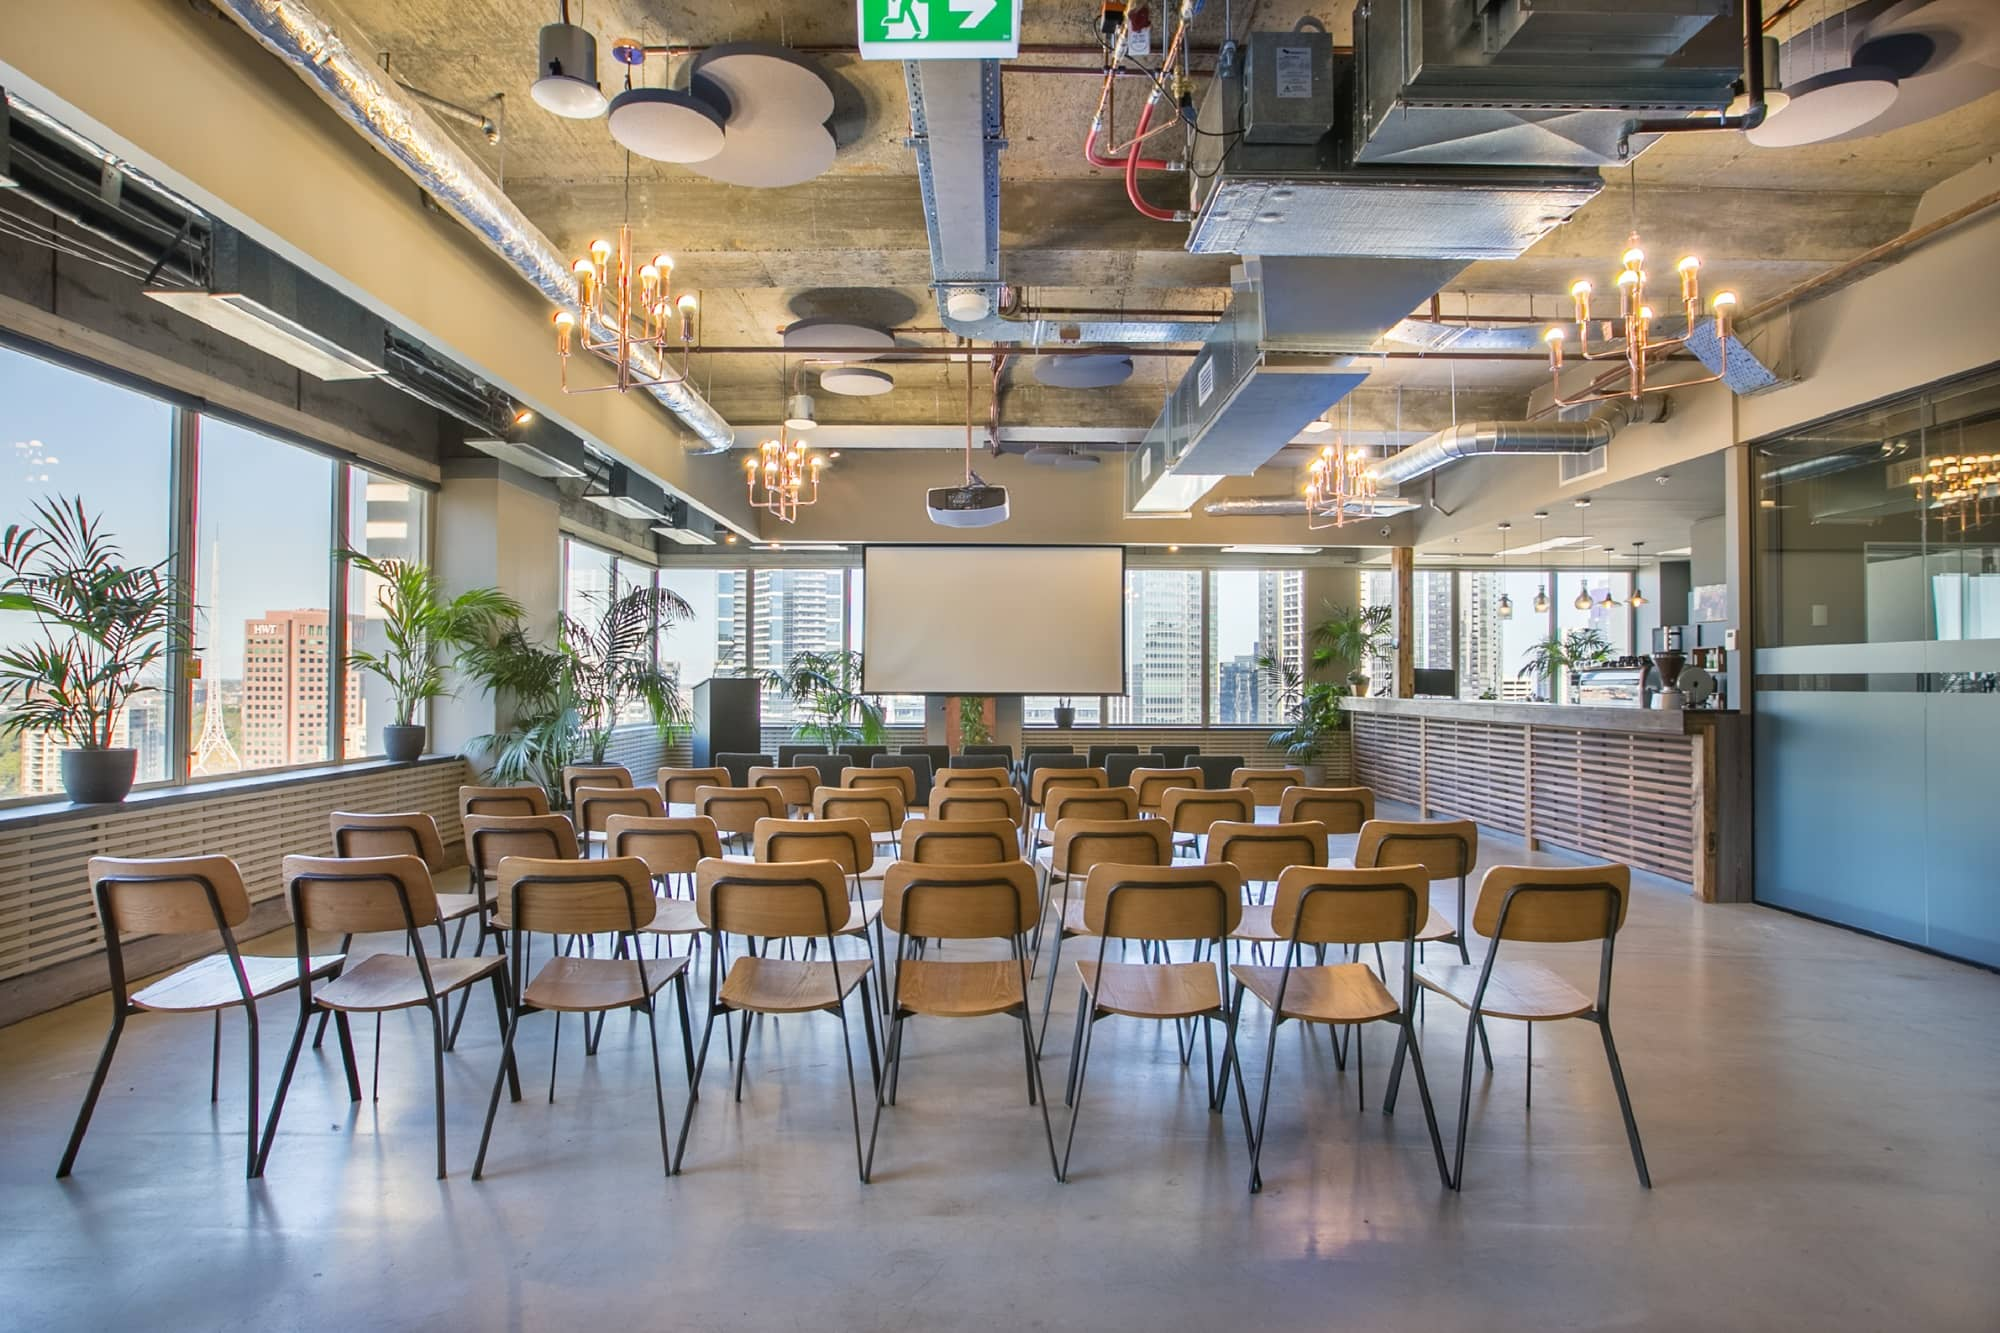 CBD event space with theatre seating